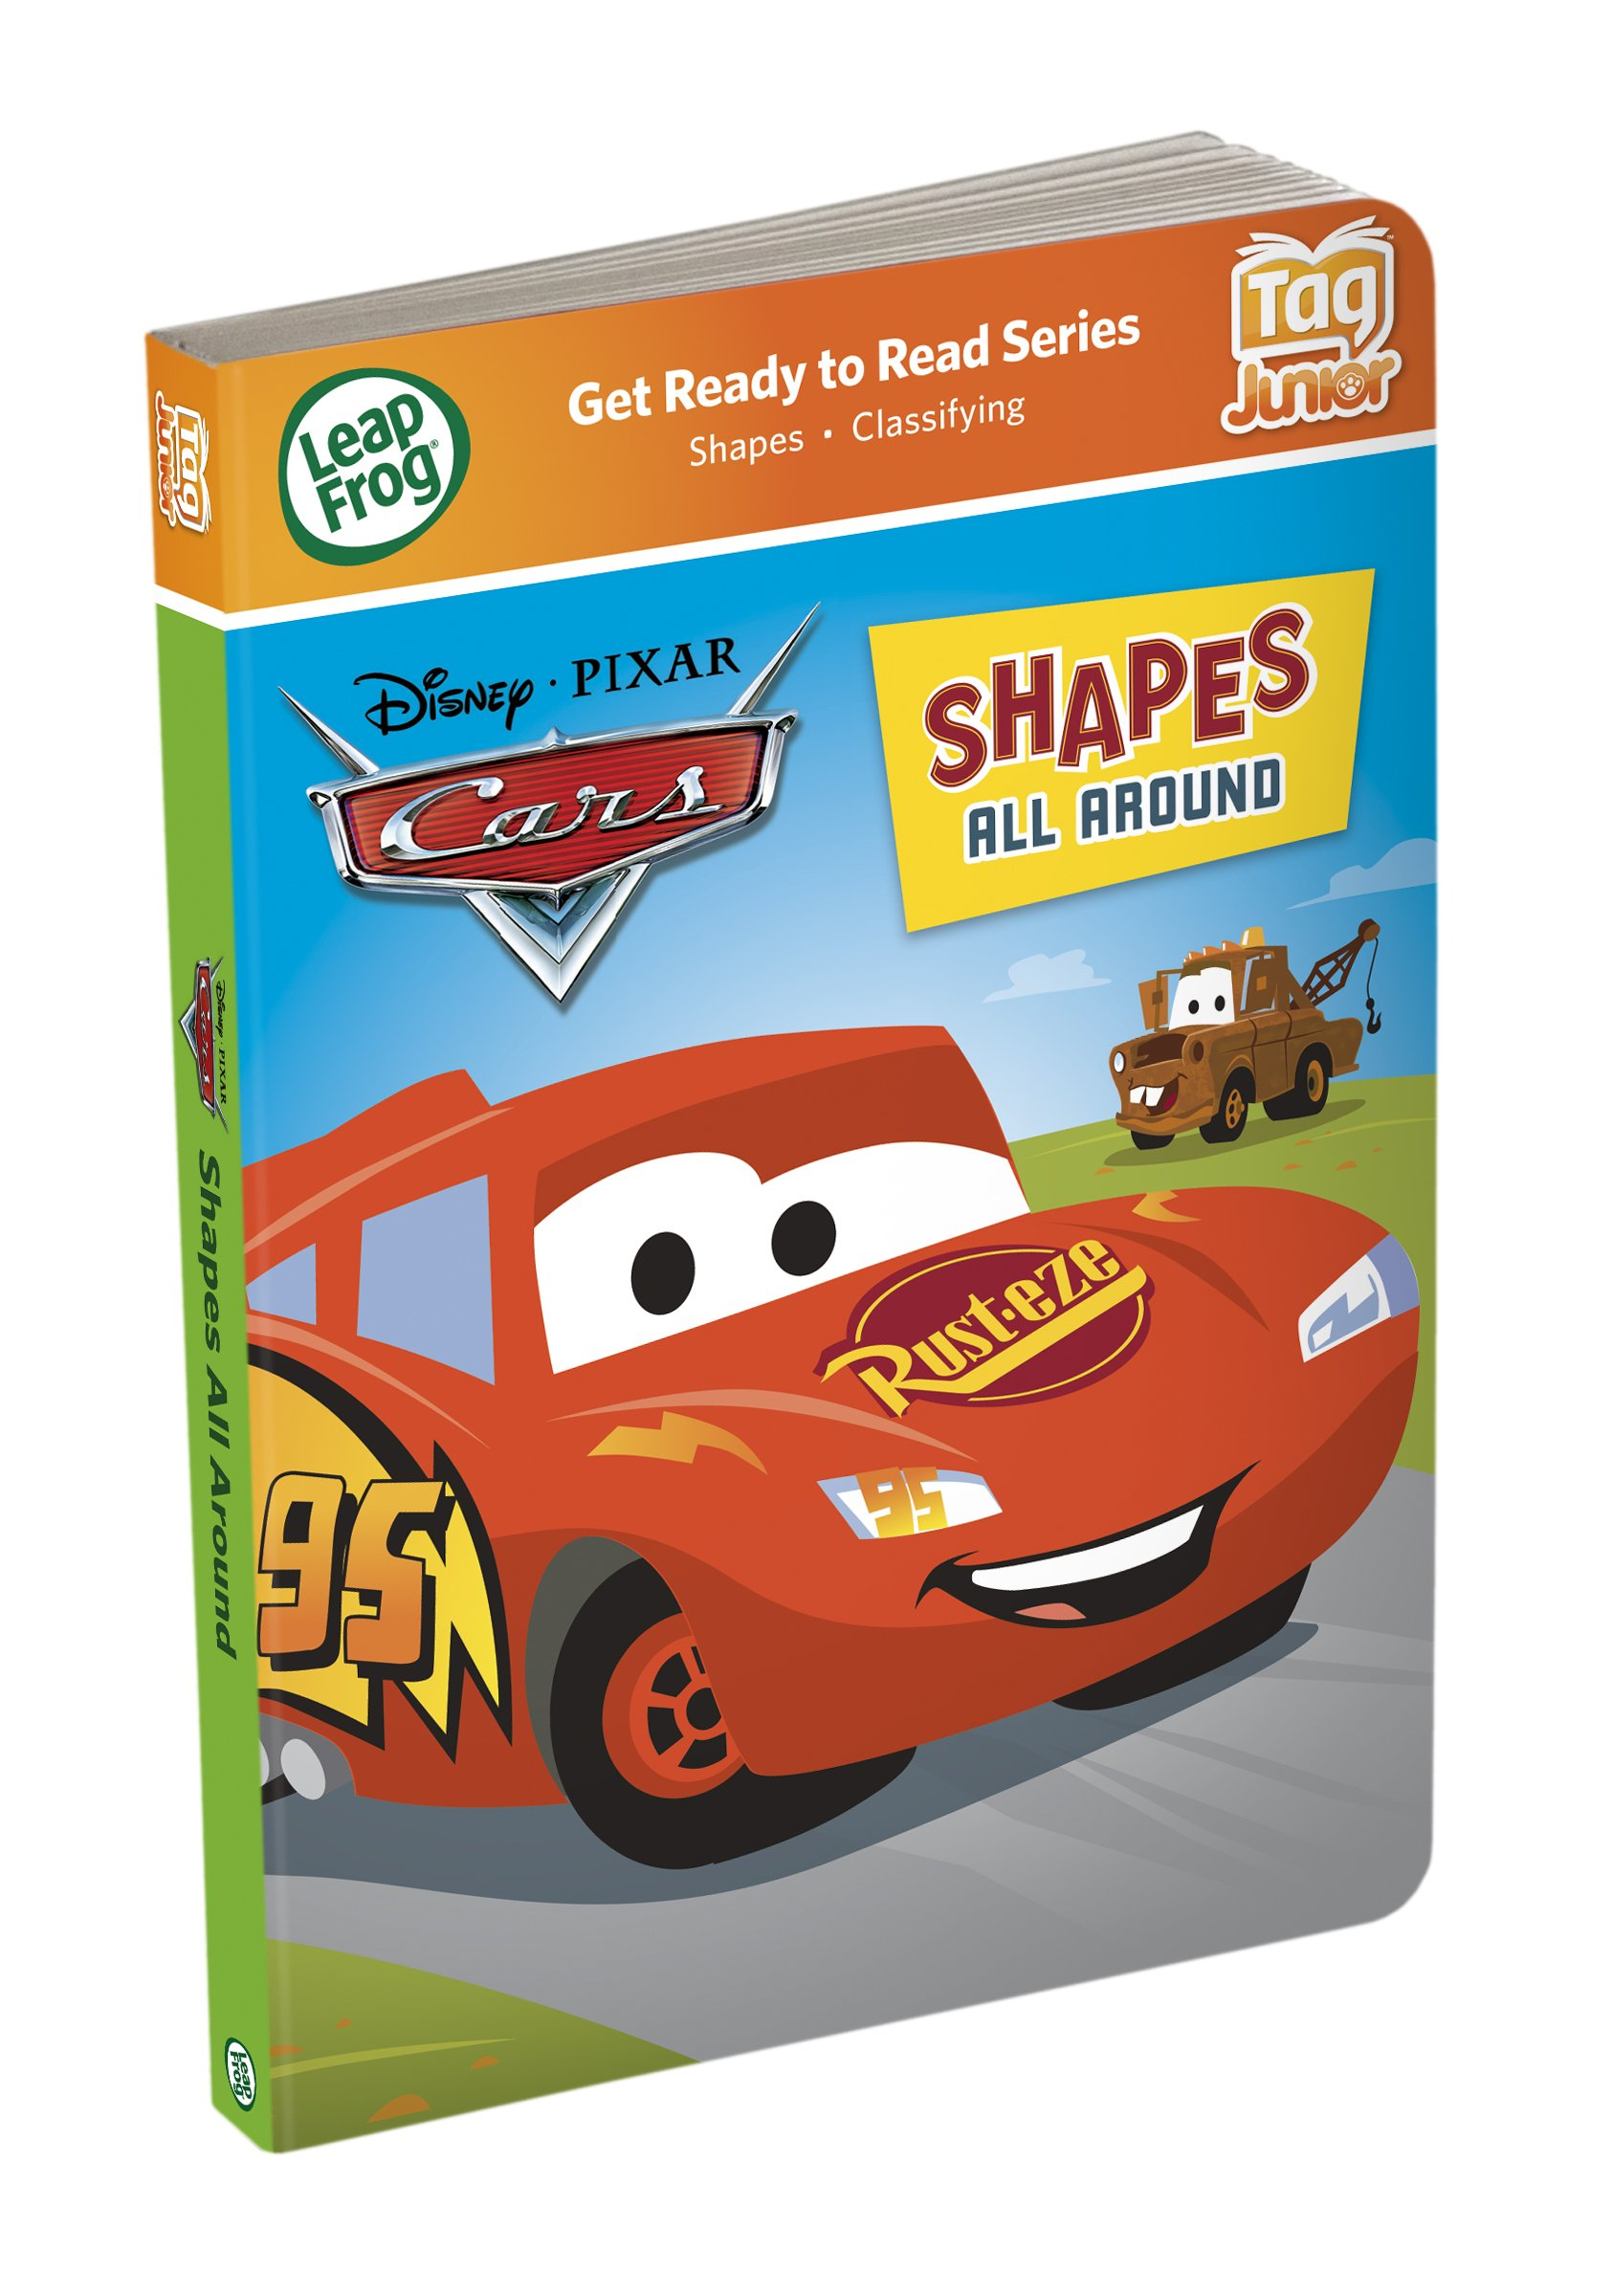 LeapFrog Tag Junior Book Cars Shapes All Around (works with LeapReader Junior) by LeapFrog (Image #1)